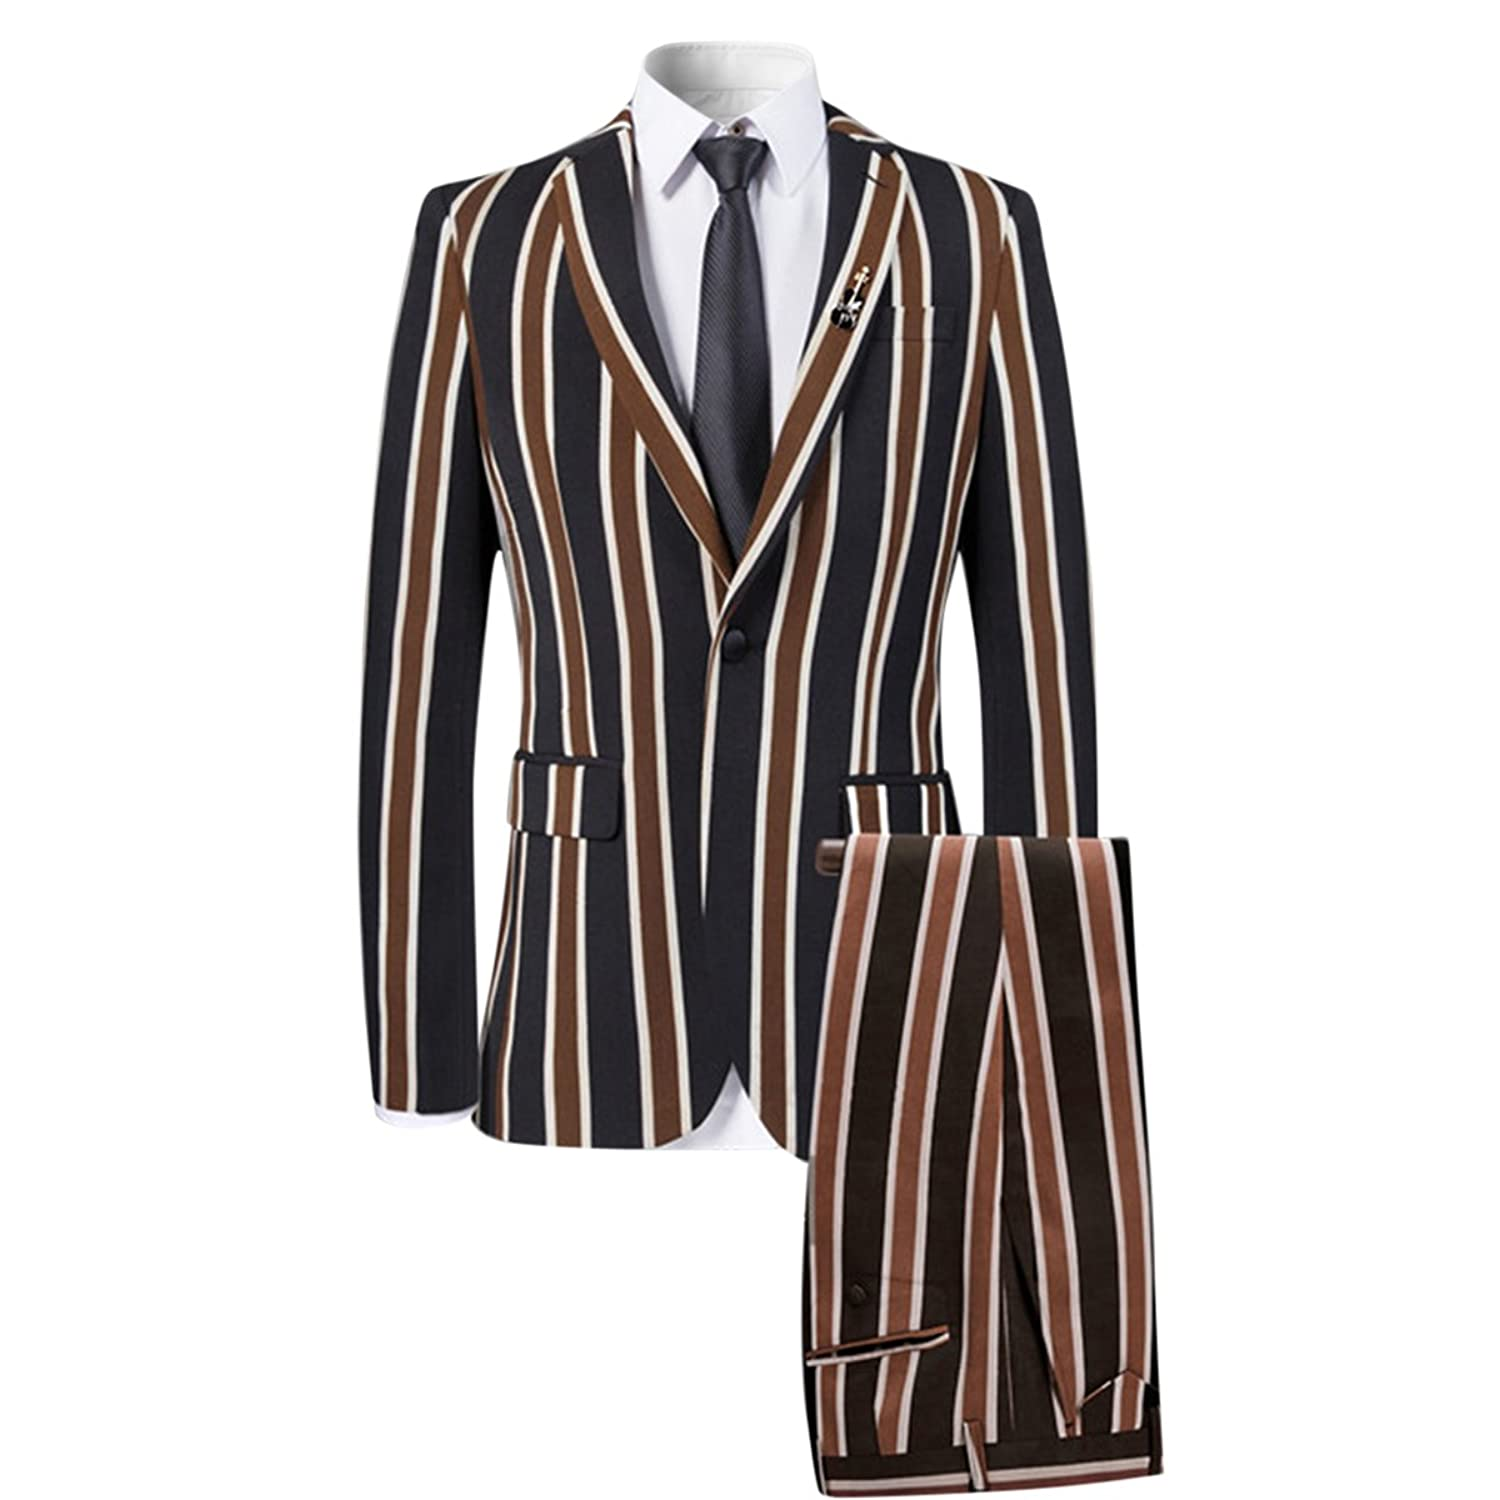 Retro Clothing for Men | Vintage Men's Fashion Colored Striped 3 Piece Suit Slim Fit Tuxedo Blazer Jacket Pants Vest Set $105.99 AT vintagedancer.com